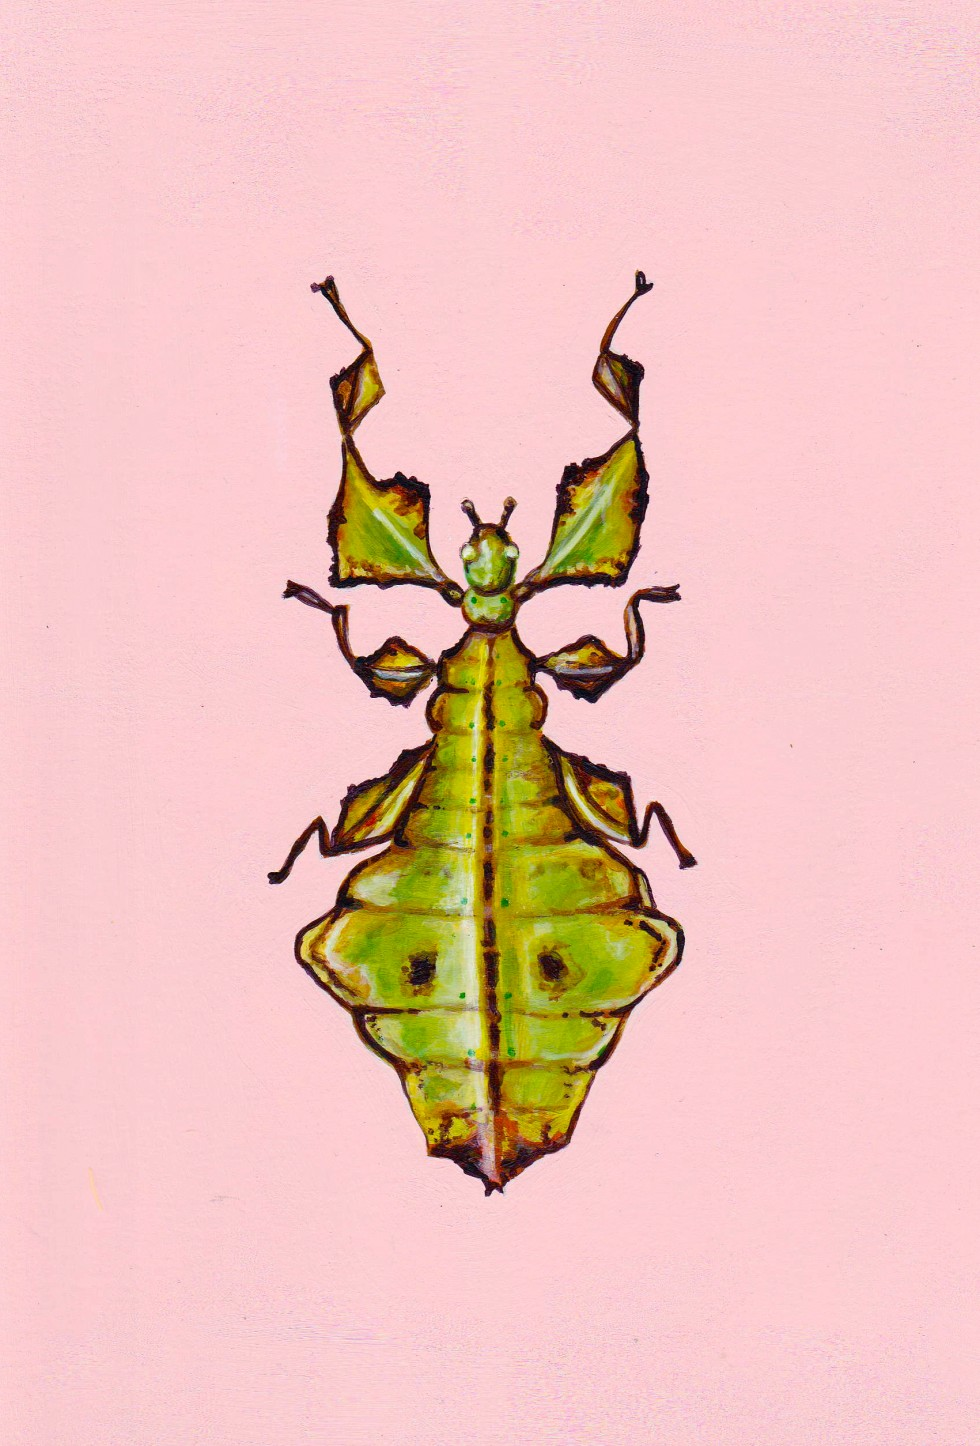 Rectangular acrylic painting of a lime green Giant Malaysian leaf insect on a bubblegum pink contrasting background.